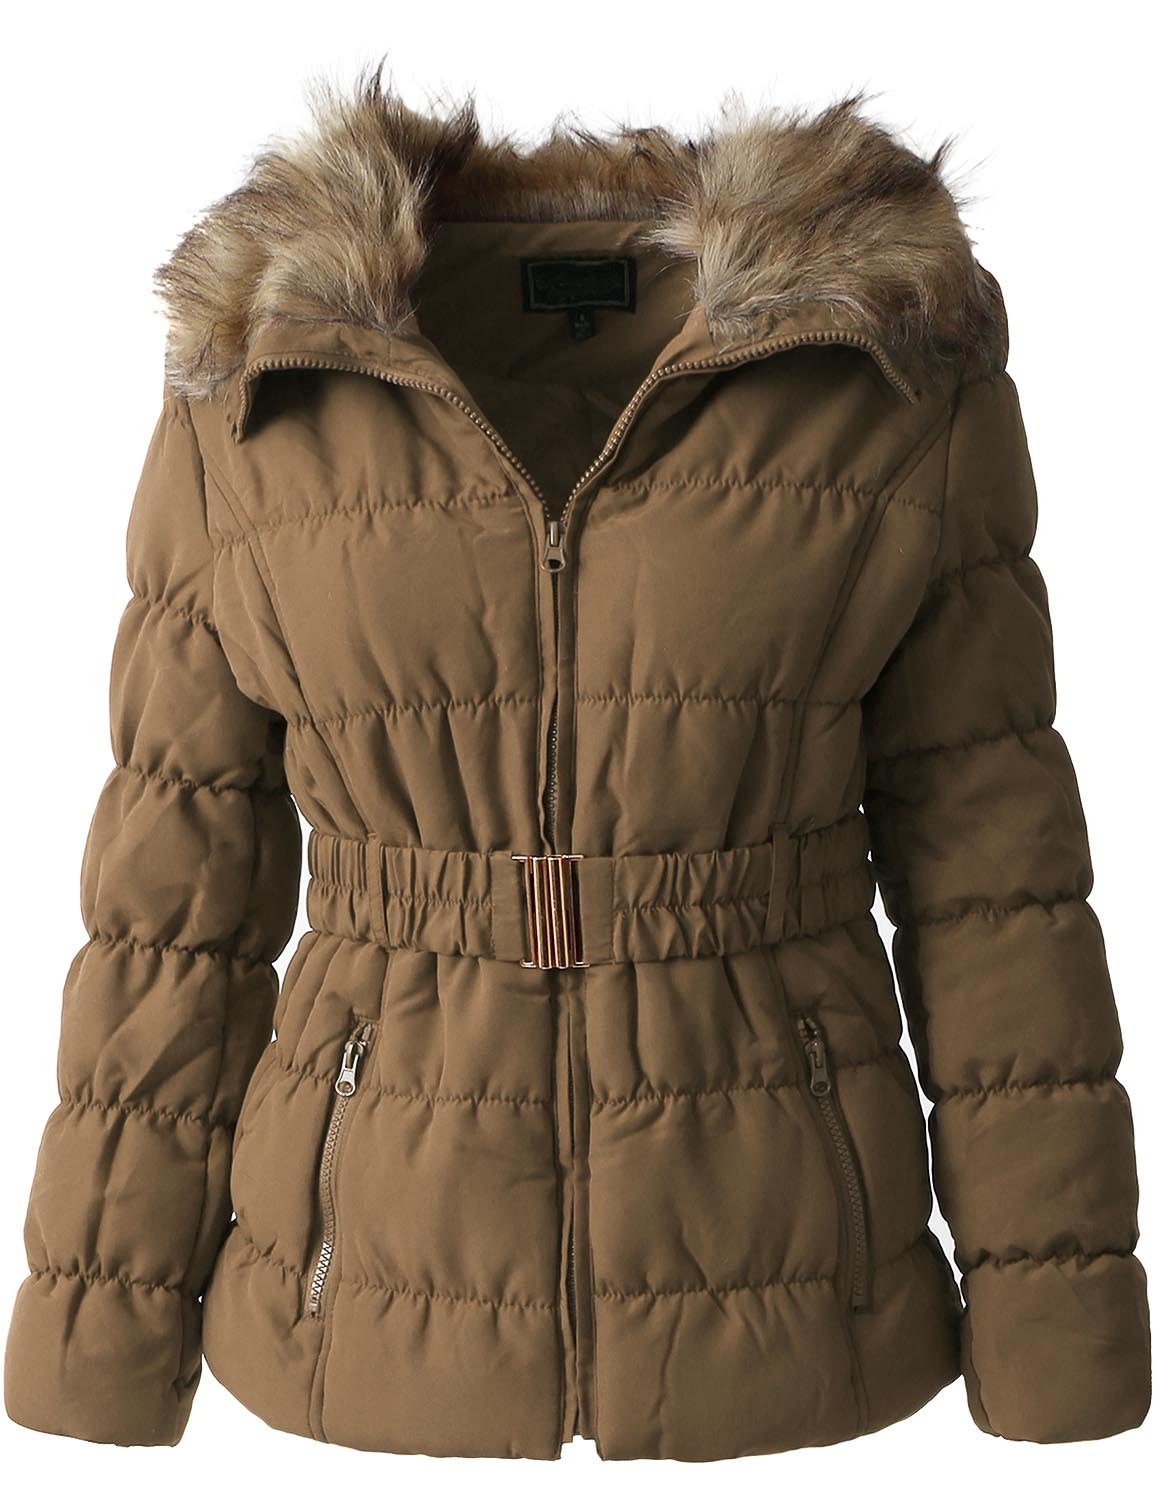 EC Womens FUR LINED COAT Warm Insulated Faux Fur Quilted Puffer Parka Jacket With Belt... by